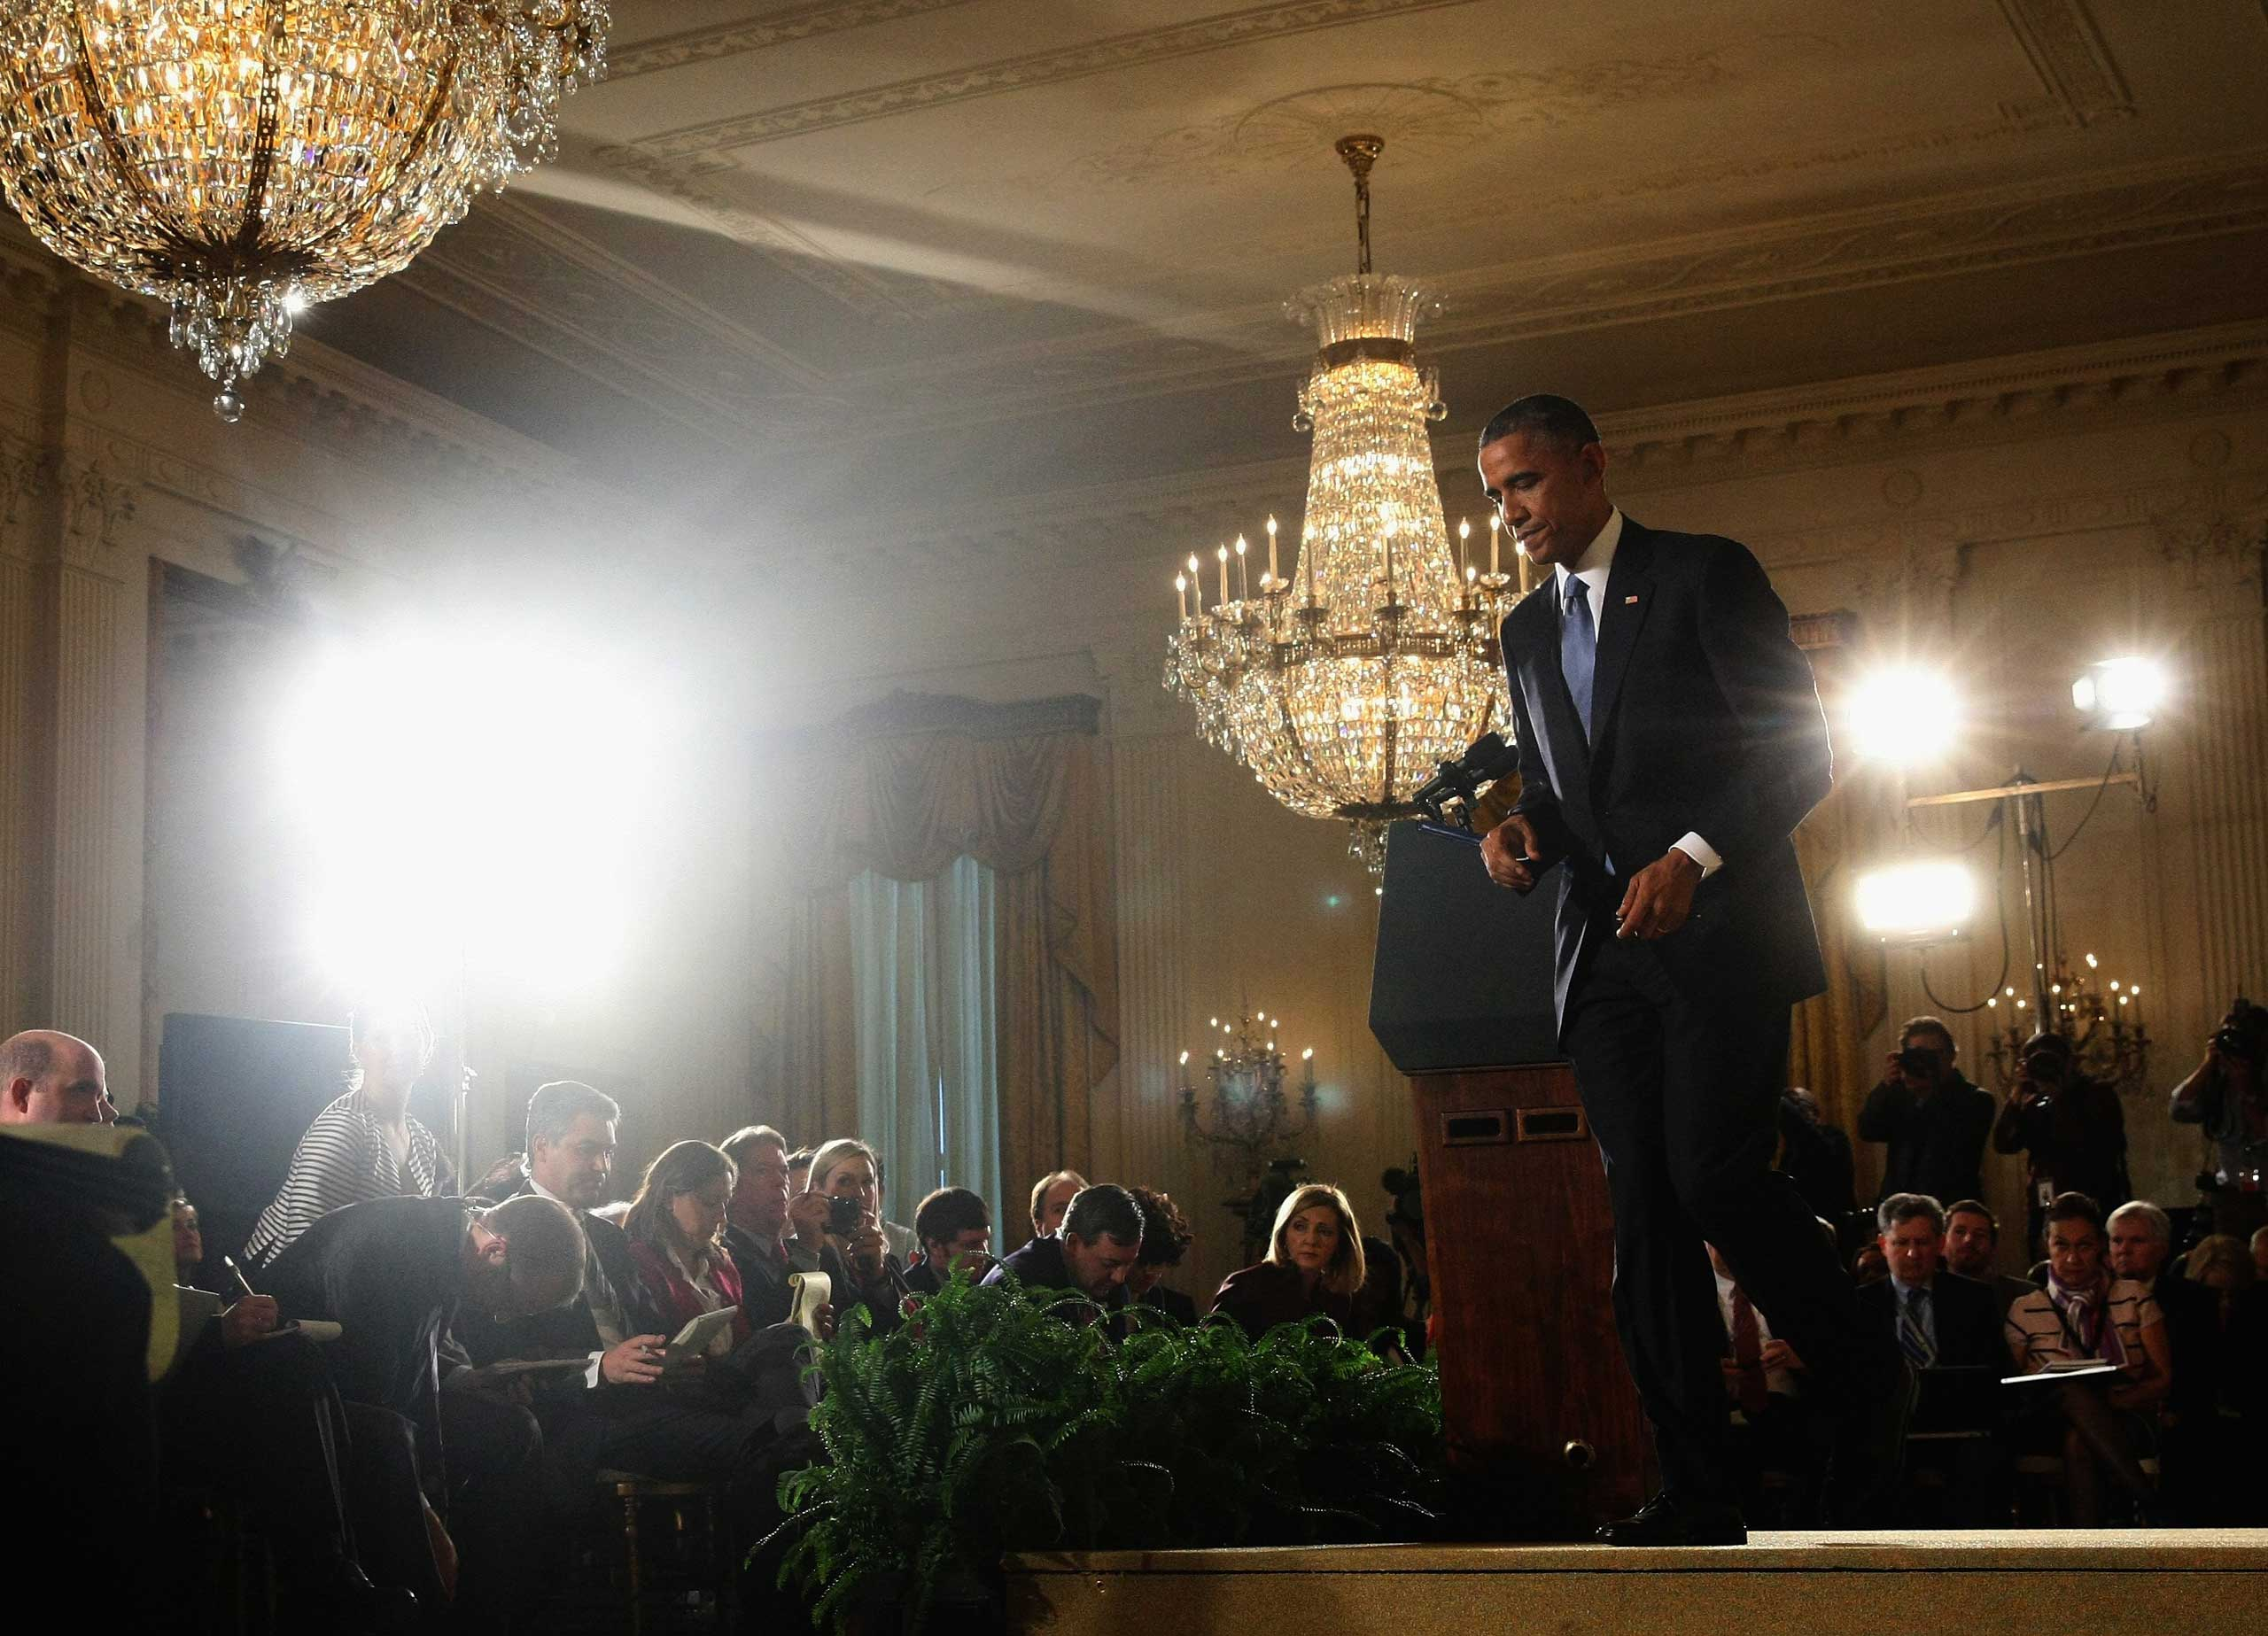 Nov. 5, 2014. President Barack Obama walks away after speaking to the media during a news conference in the East Room at the White House a day after Democrats lost the U.S. Senate Majority. Republicans won the majority of the U.S. Senate for the first time in eight years after Americans went to the polls and voted in the mid-term elections.